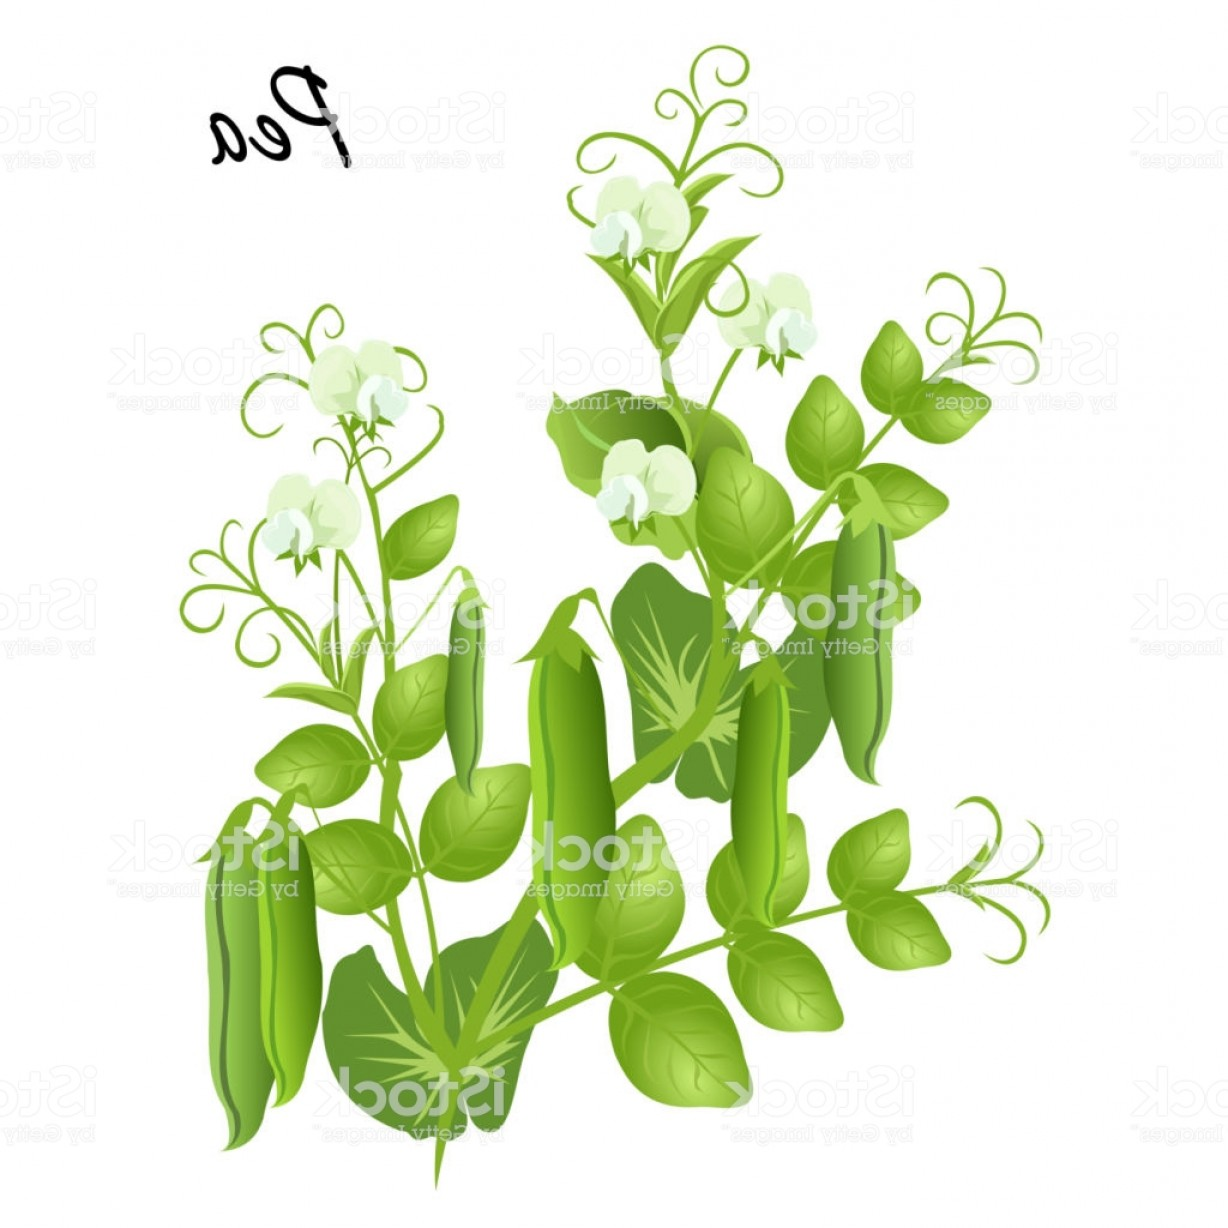 Seed Flower Vectors: Pea Plant With Flowers And Seed Pods Vector Illustration Gm